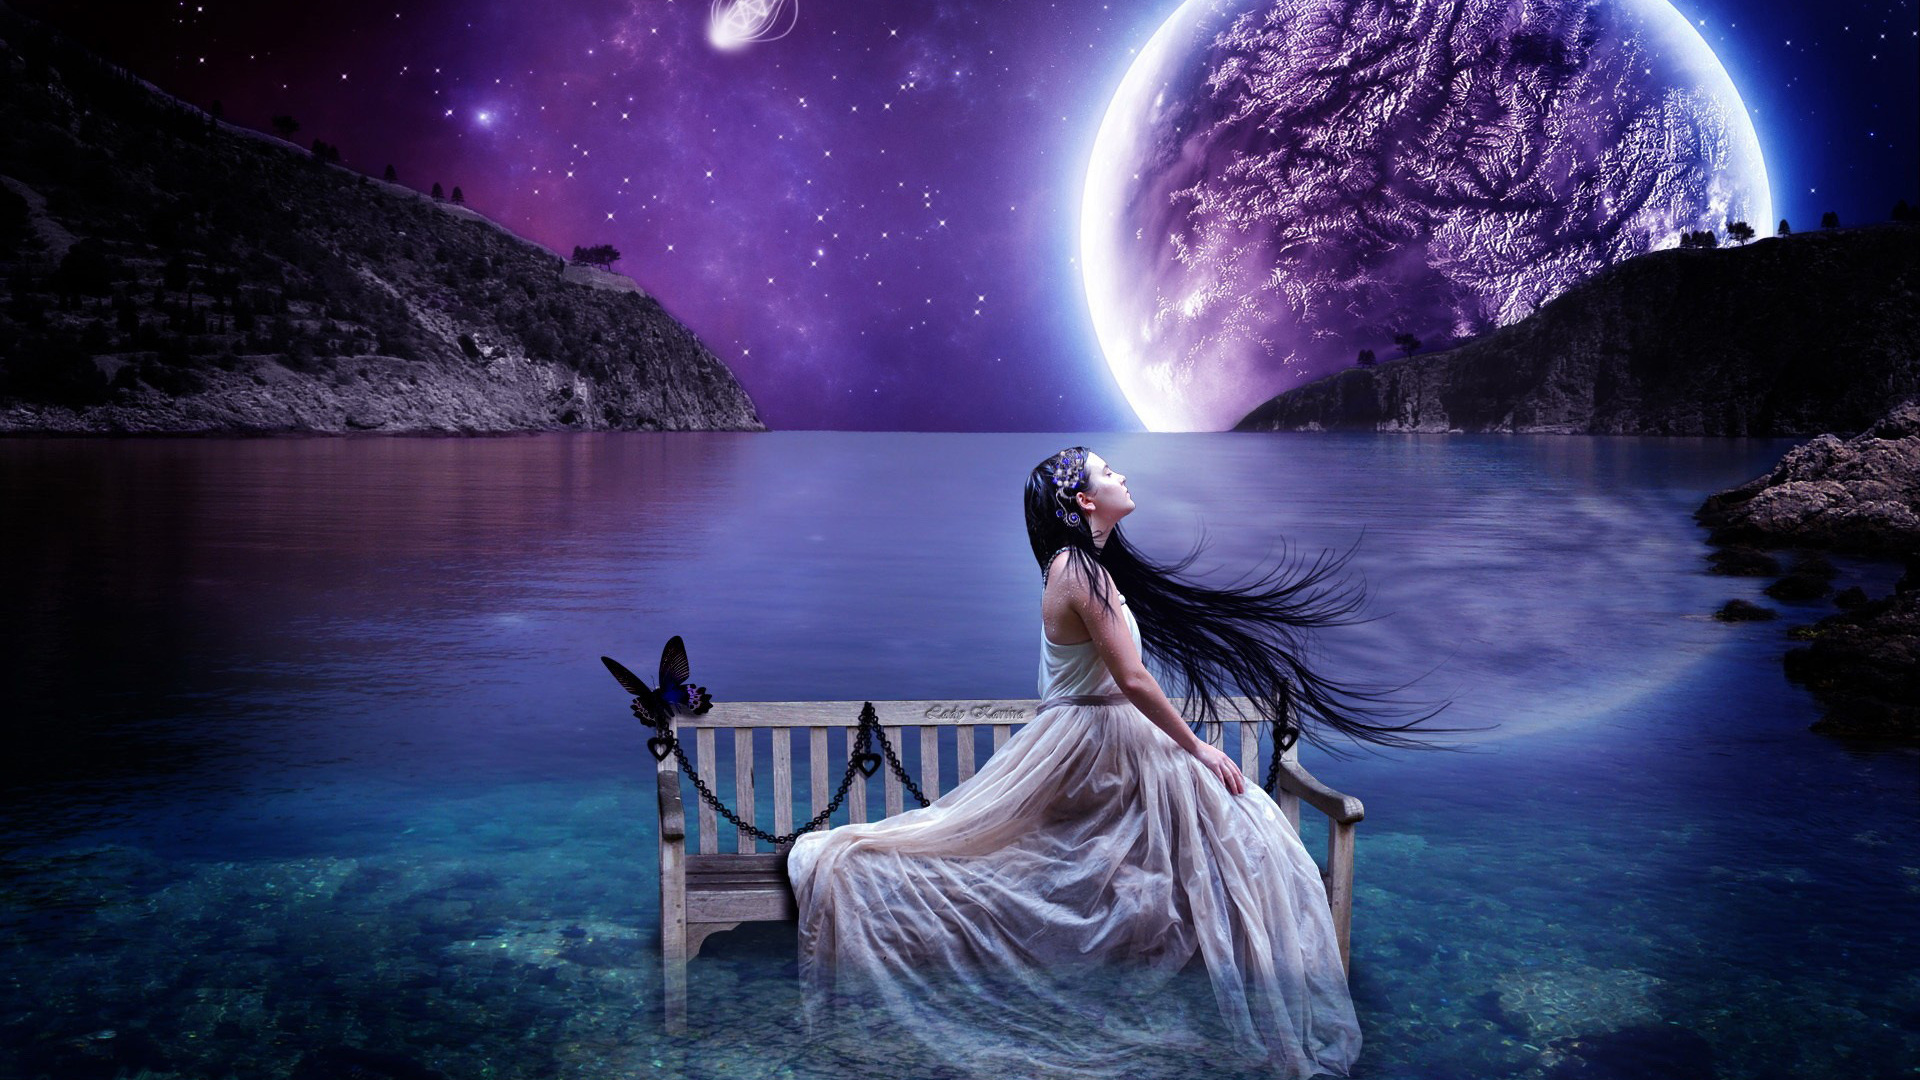 20+ dreamy and fantasy desktop wallpapers, backgrounds, images